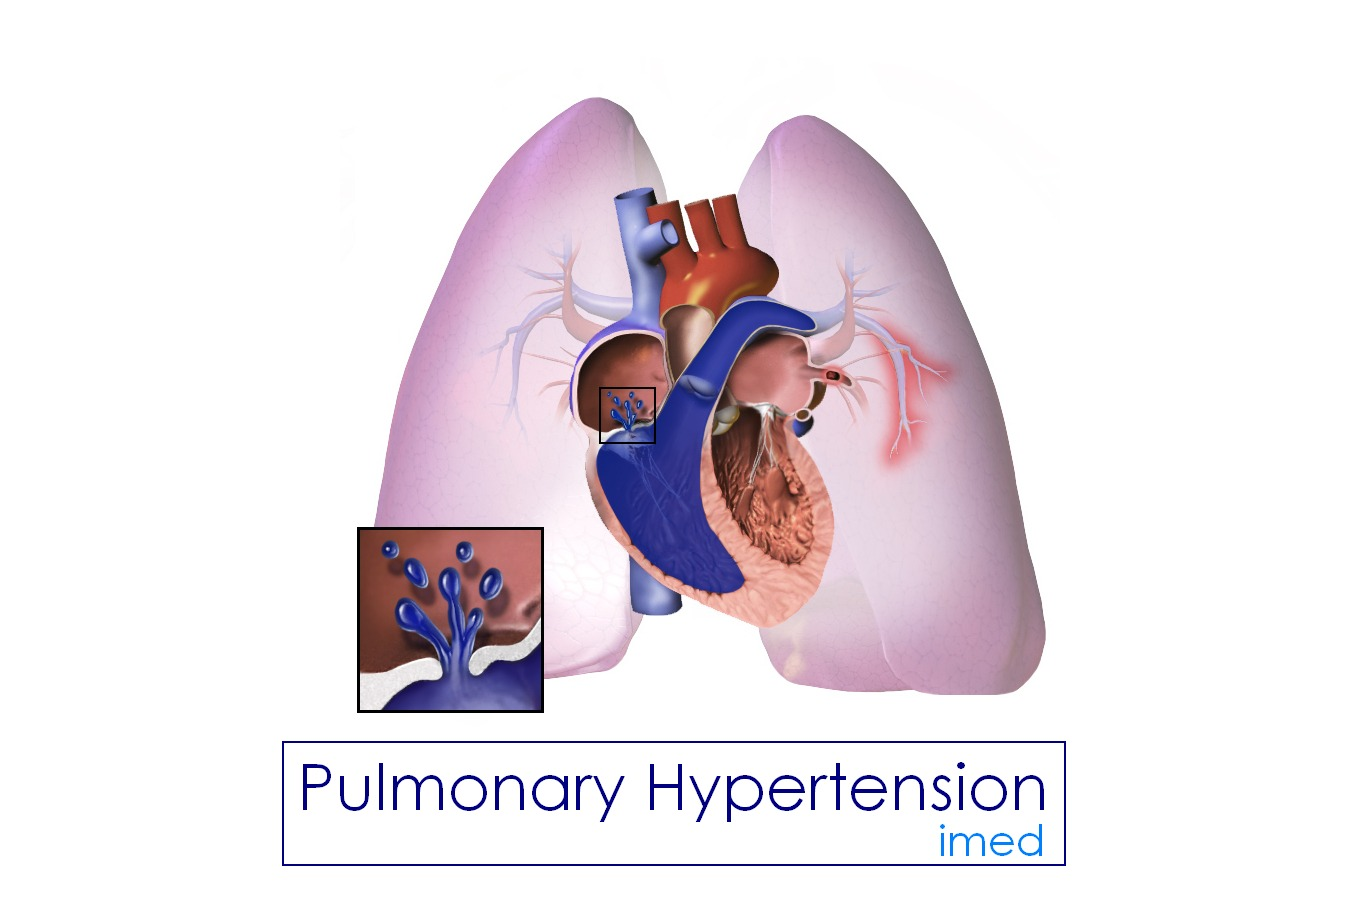 Pulmonary Hypertension: Causes, Symptoms and Treatment